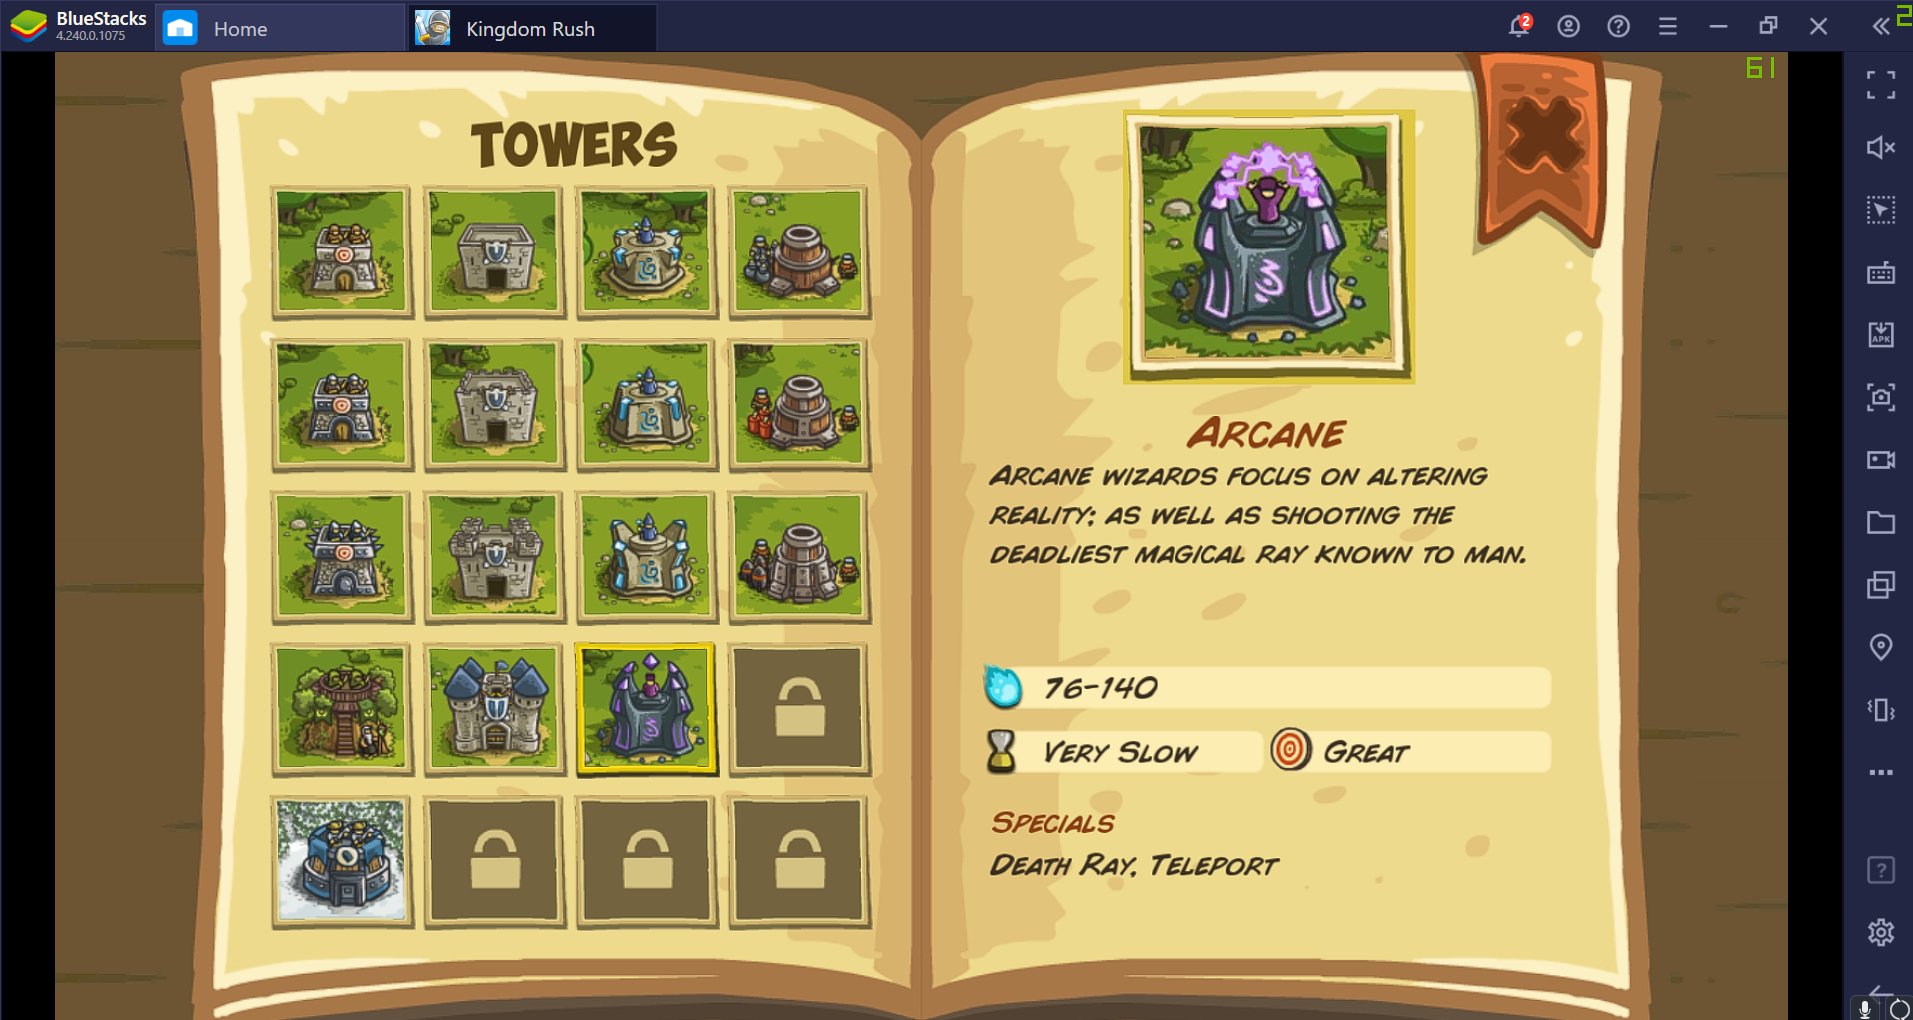 Tips and Tricks to Get Better at Kingdom Rush on PC